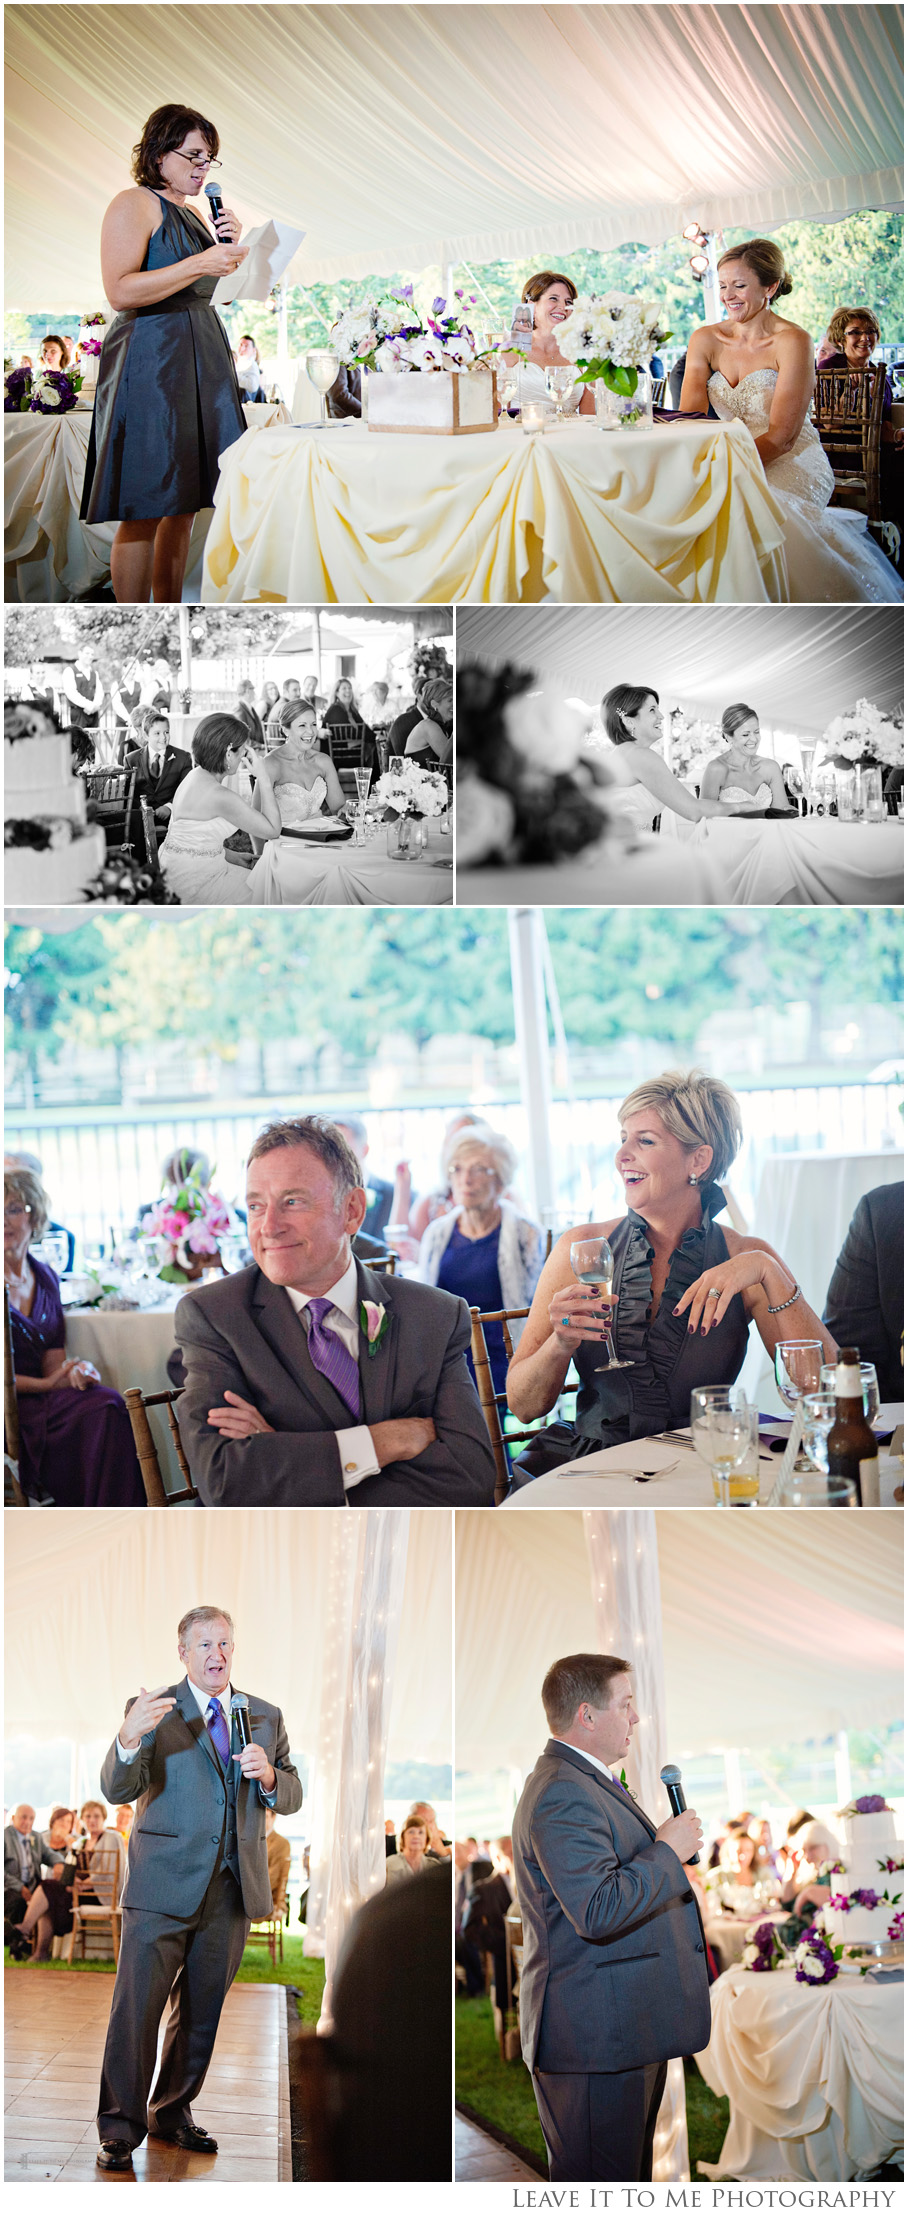 LGBT Wedding-Delaware Wedding Photographer-Equailty Wedding-Same sex Wedding-Speeches